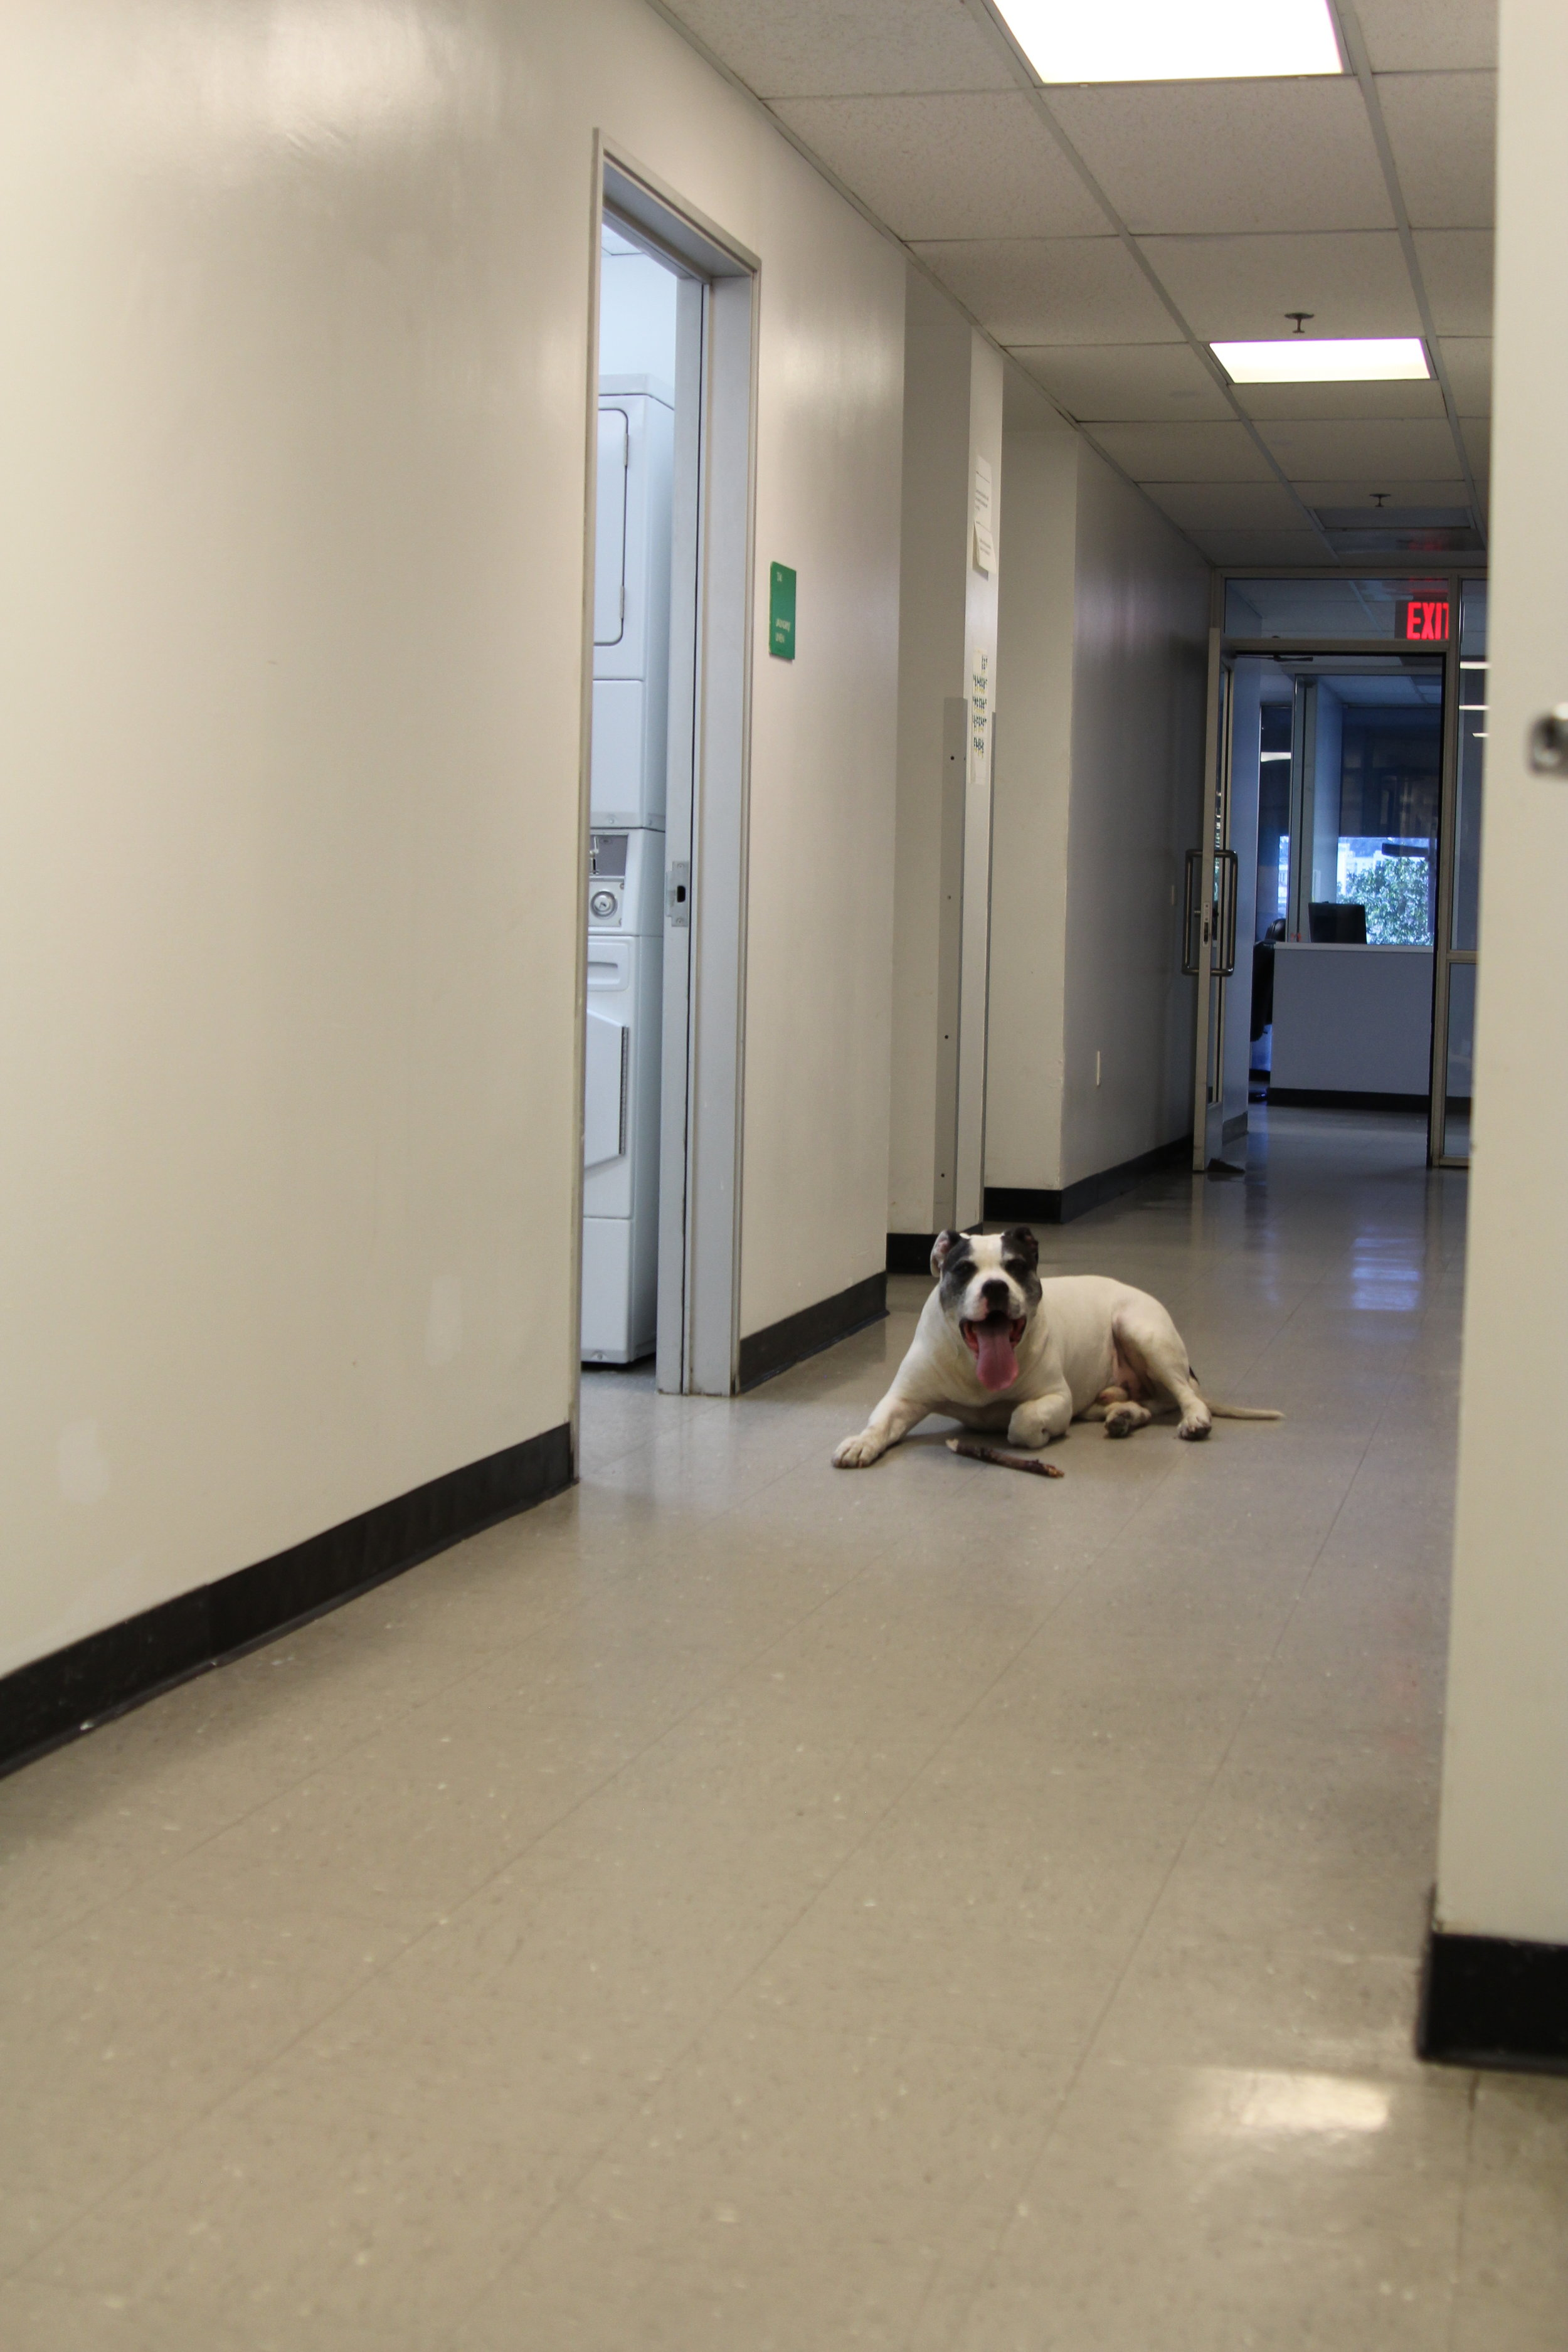 A PATH shelter resident's dog happily munching on a stick outside the laundry room.